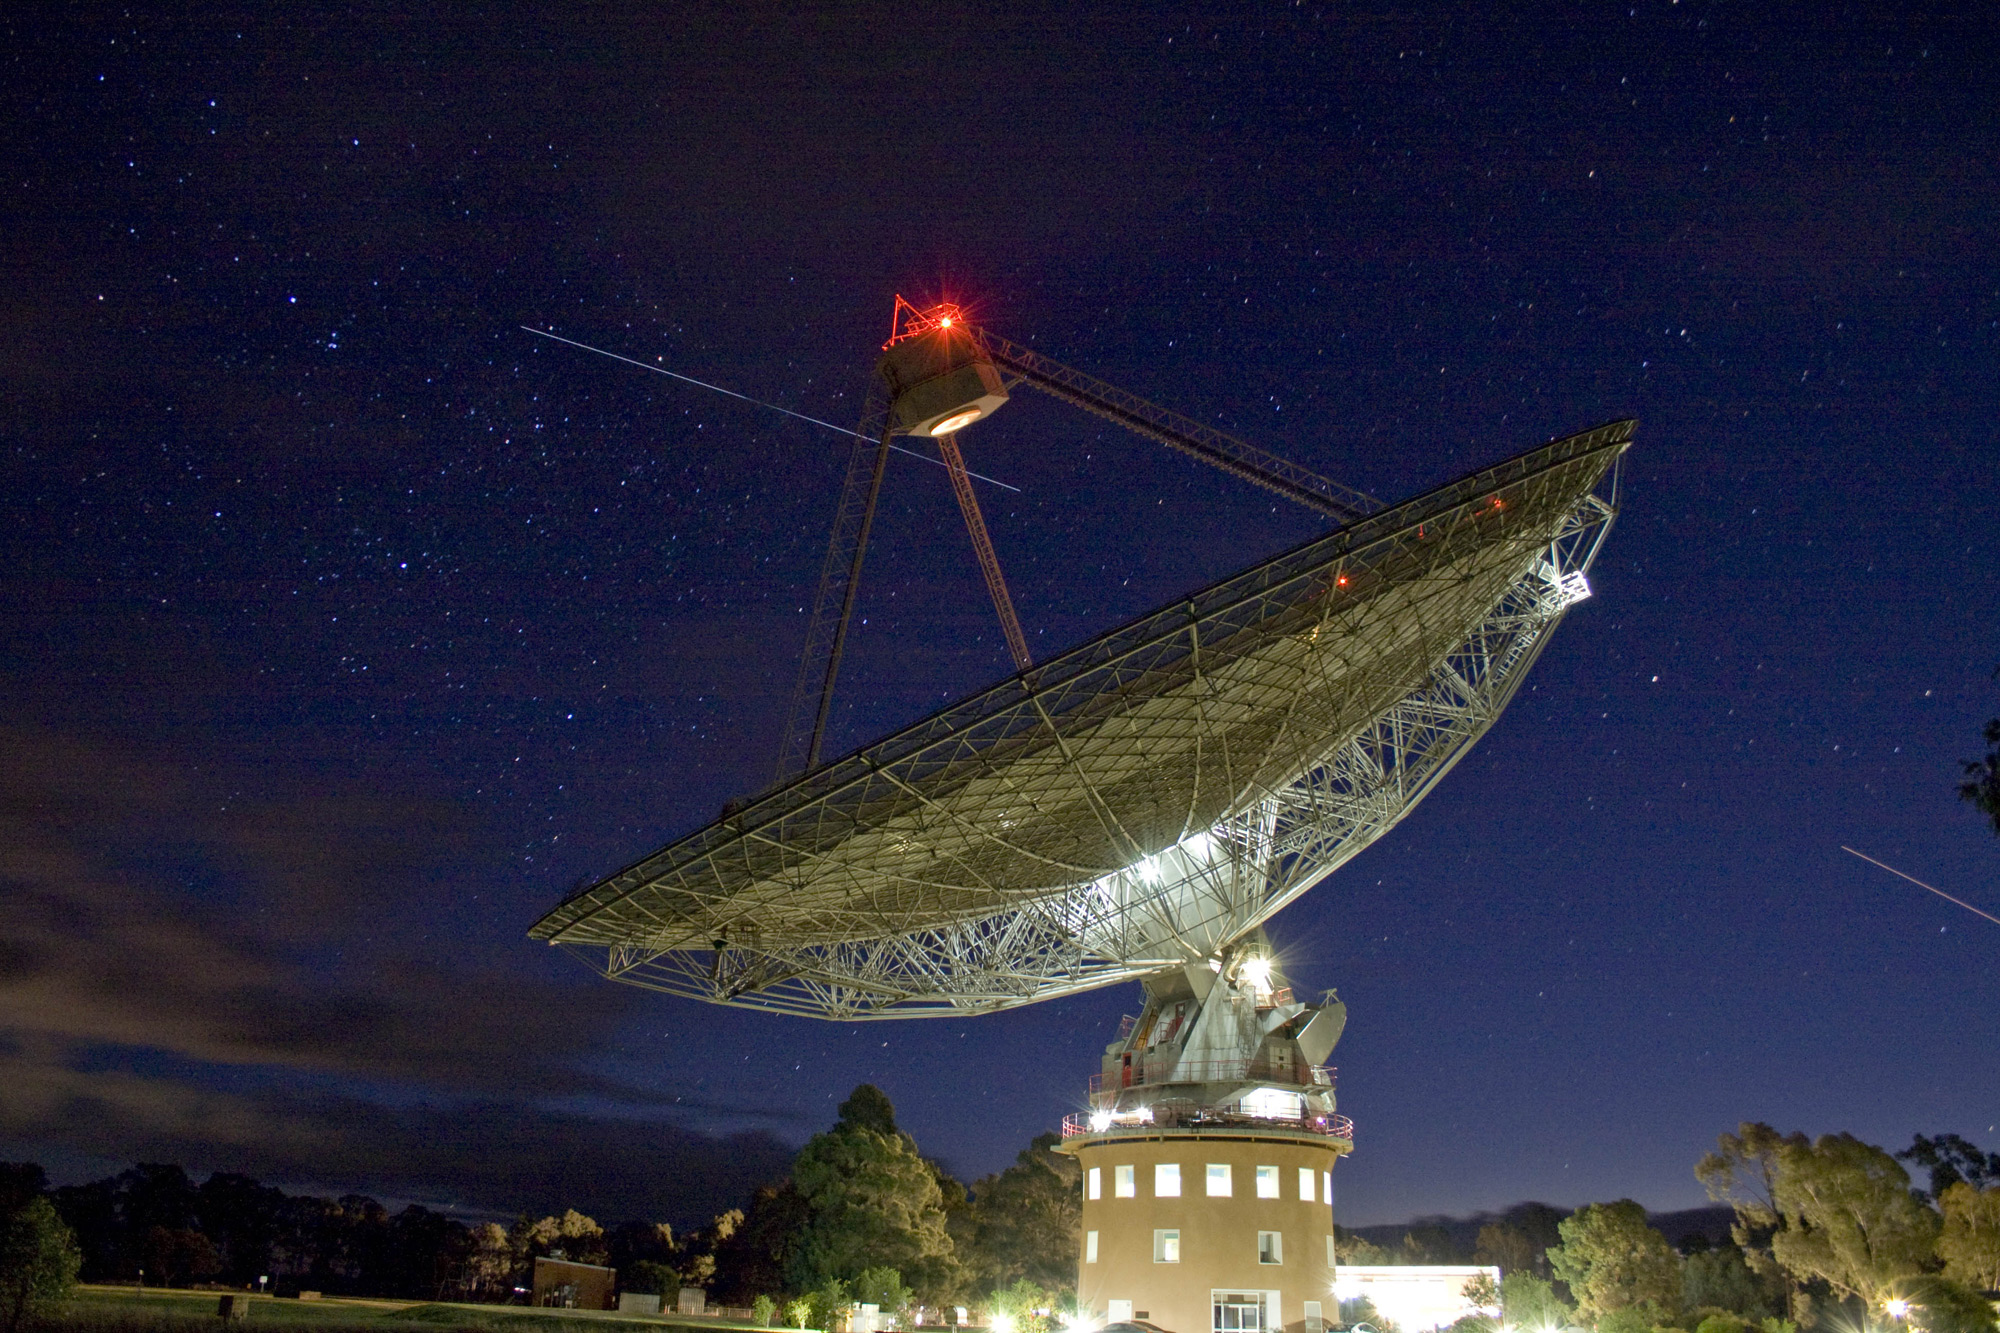 In a Land Down Under, Where Spacecraft Glow